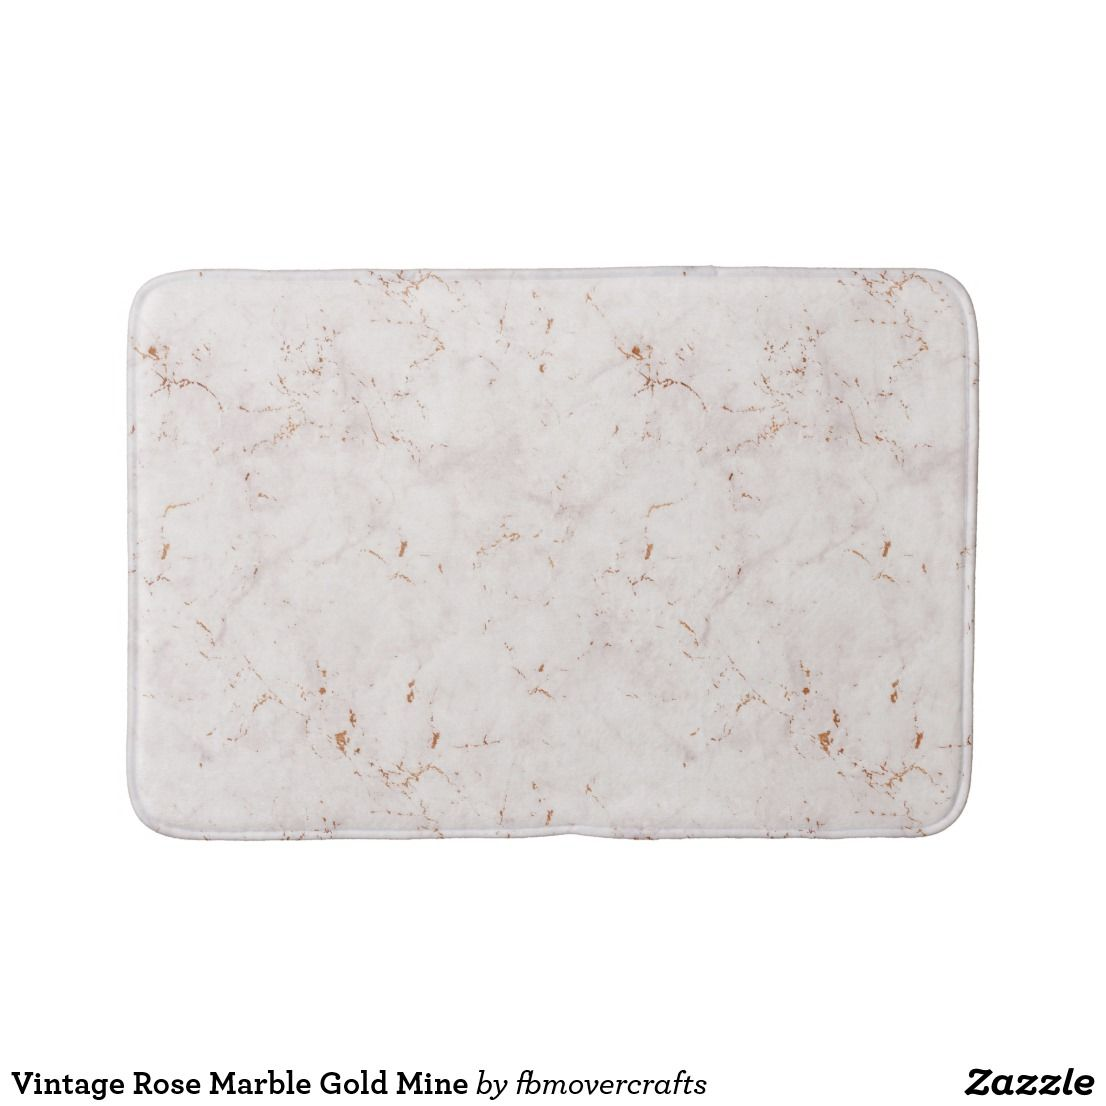 Vintage Rose Marble Gold Mine Bath Mat